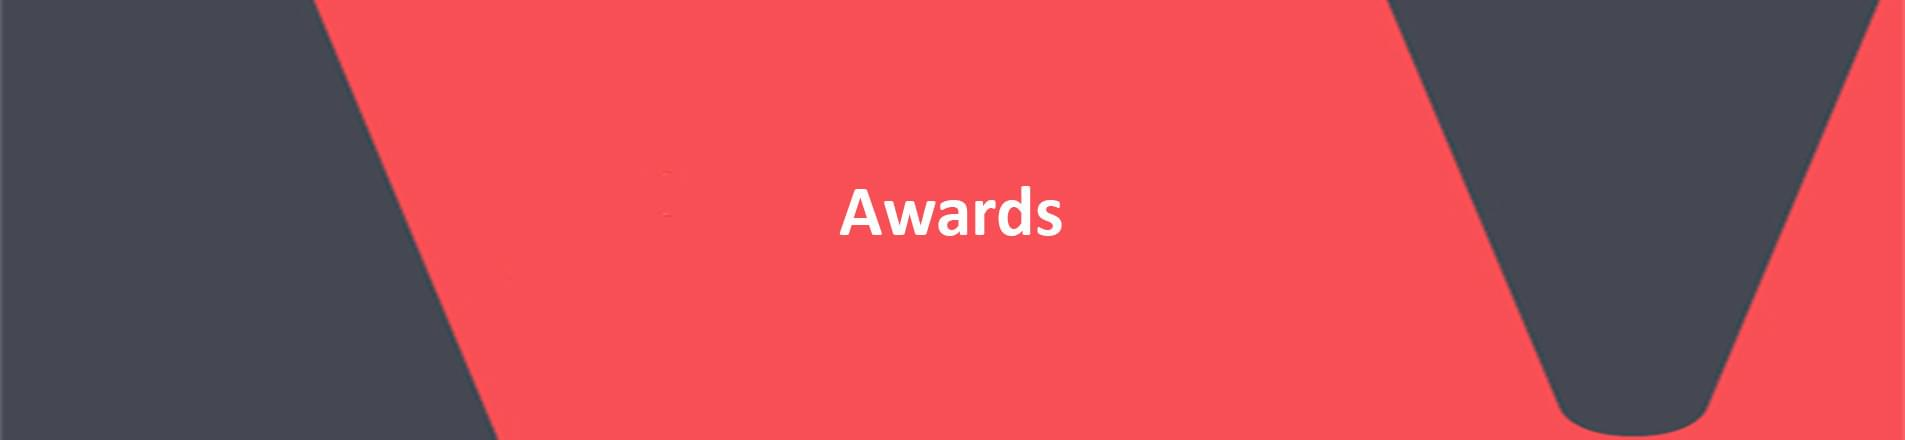 The word Award in white on a red VERCIDA branded background